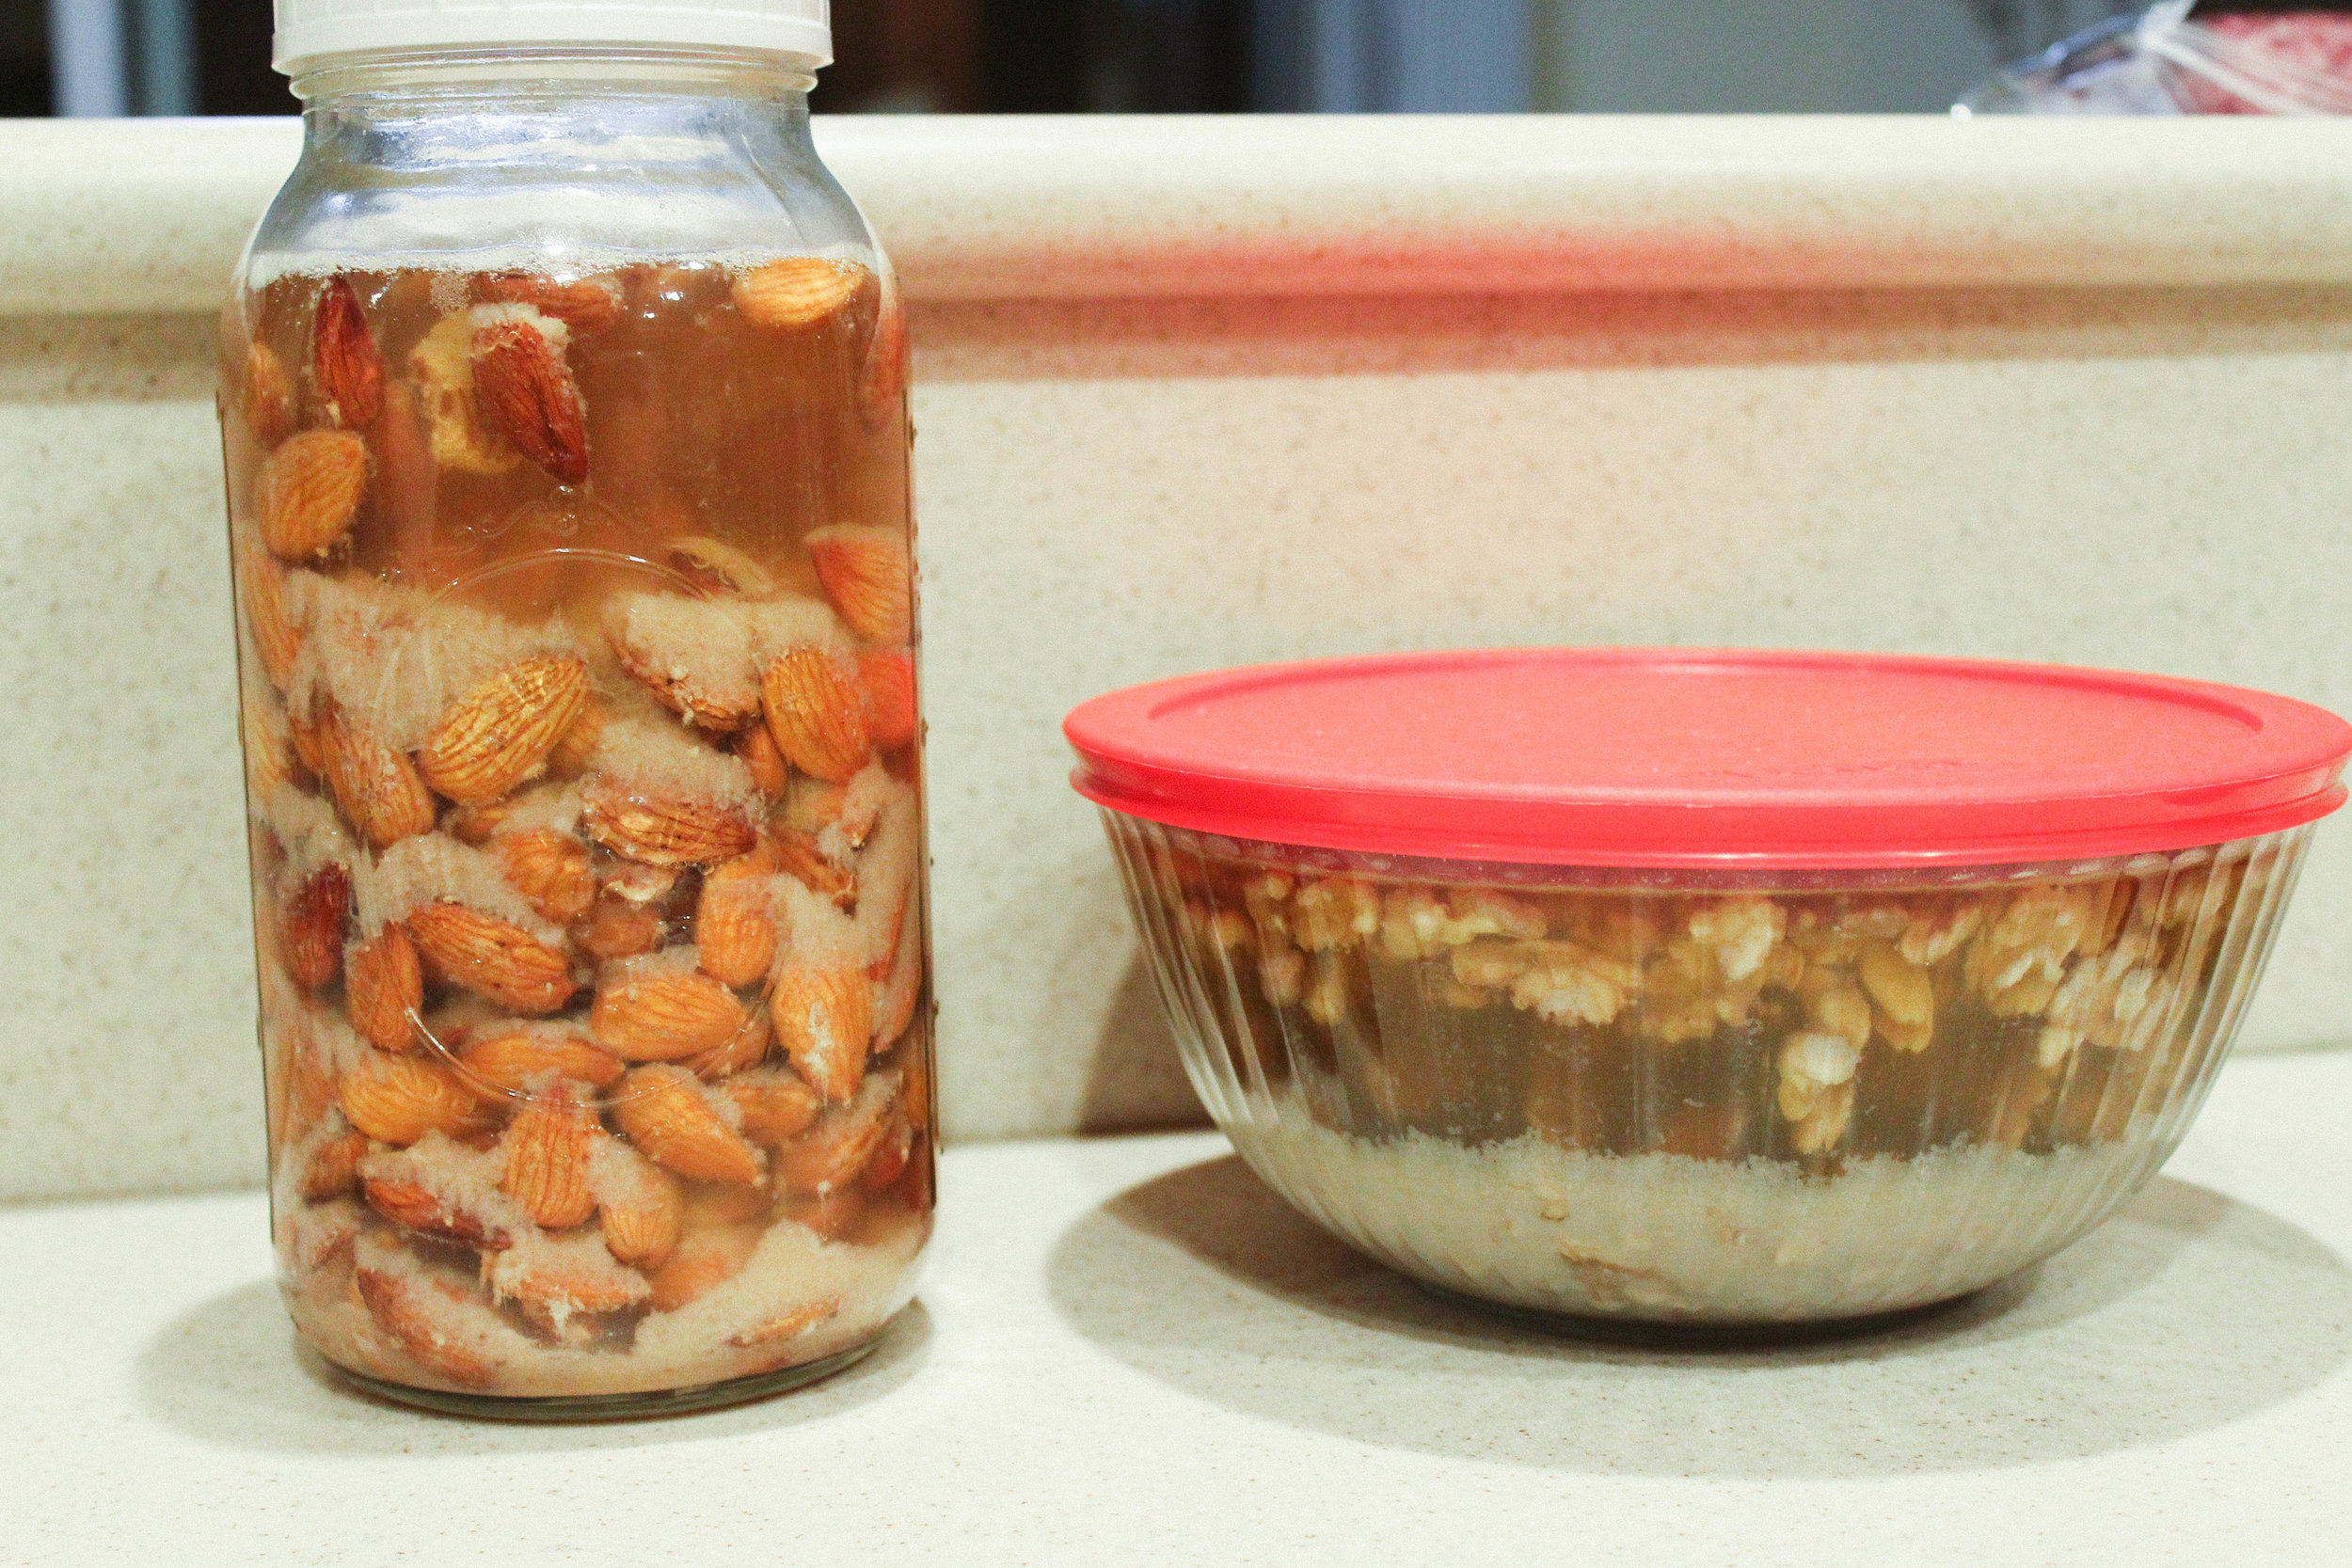 DIY-Trail-Mix-Properly-Prepared-Grains-GAPS-Trail-Mix-GAPS-GORP-GAPS-Diet-Snack-What-to-eat-on-the-gaps-diet